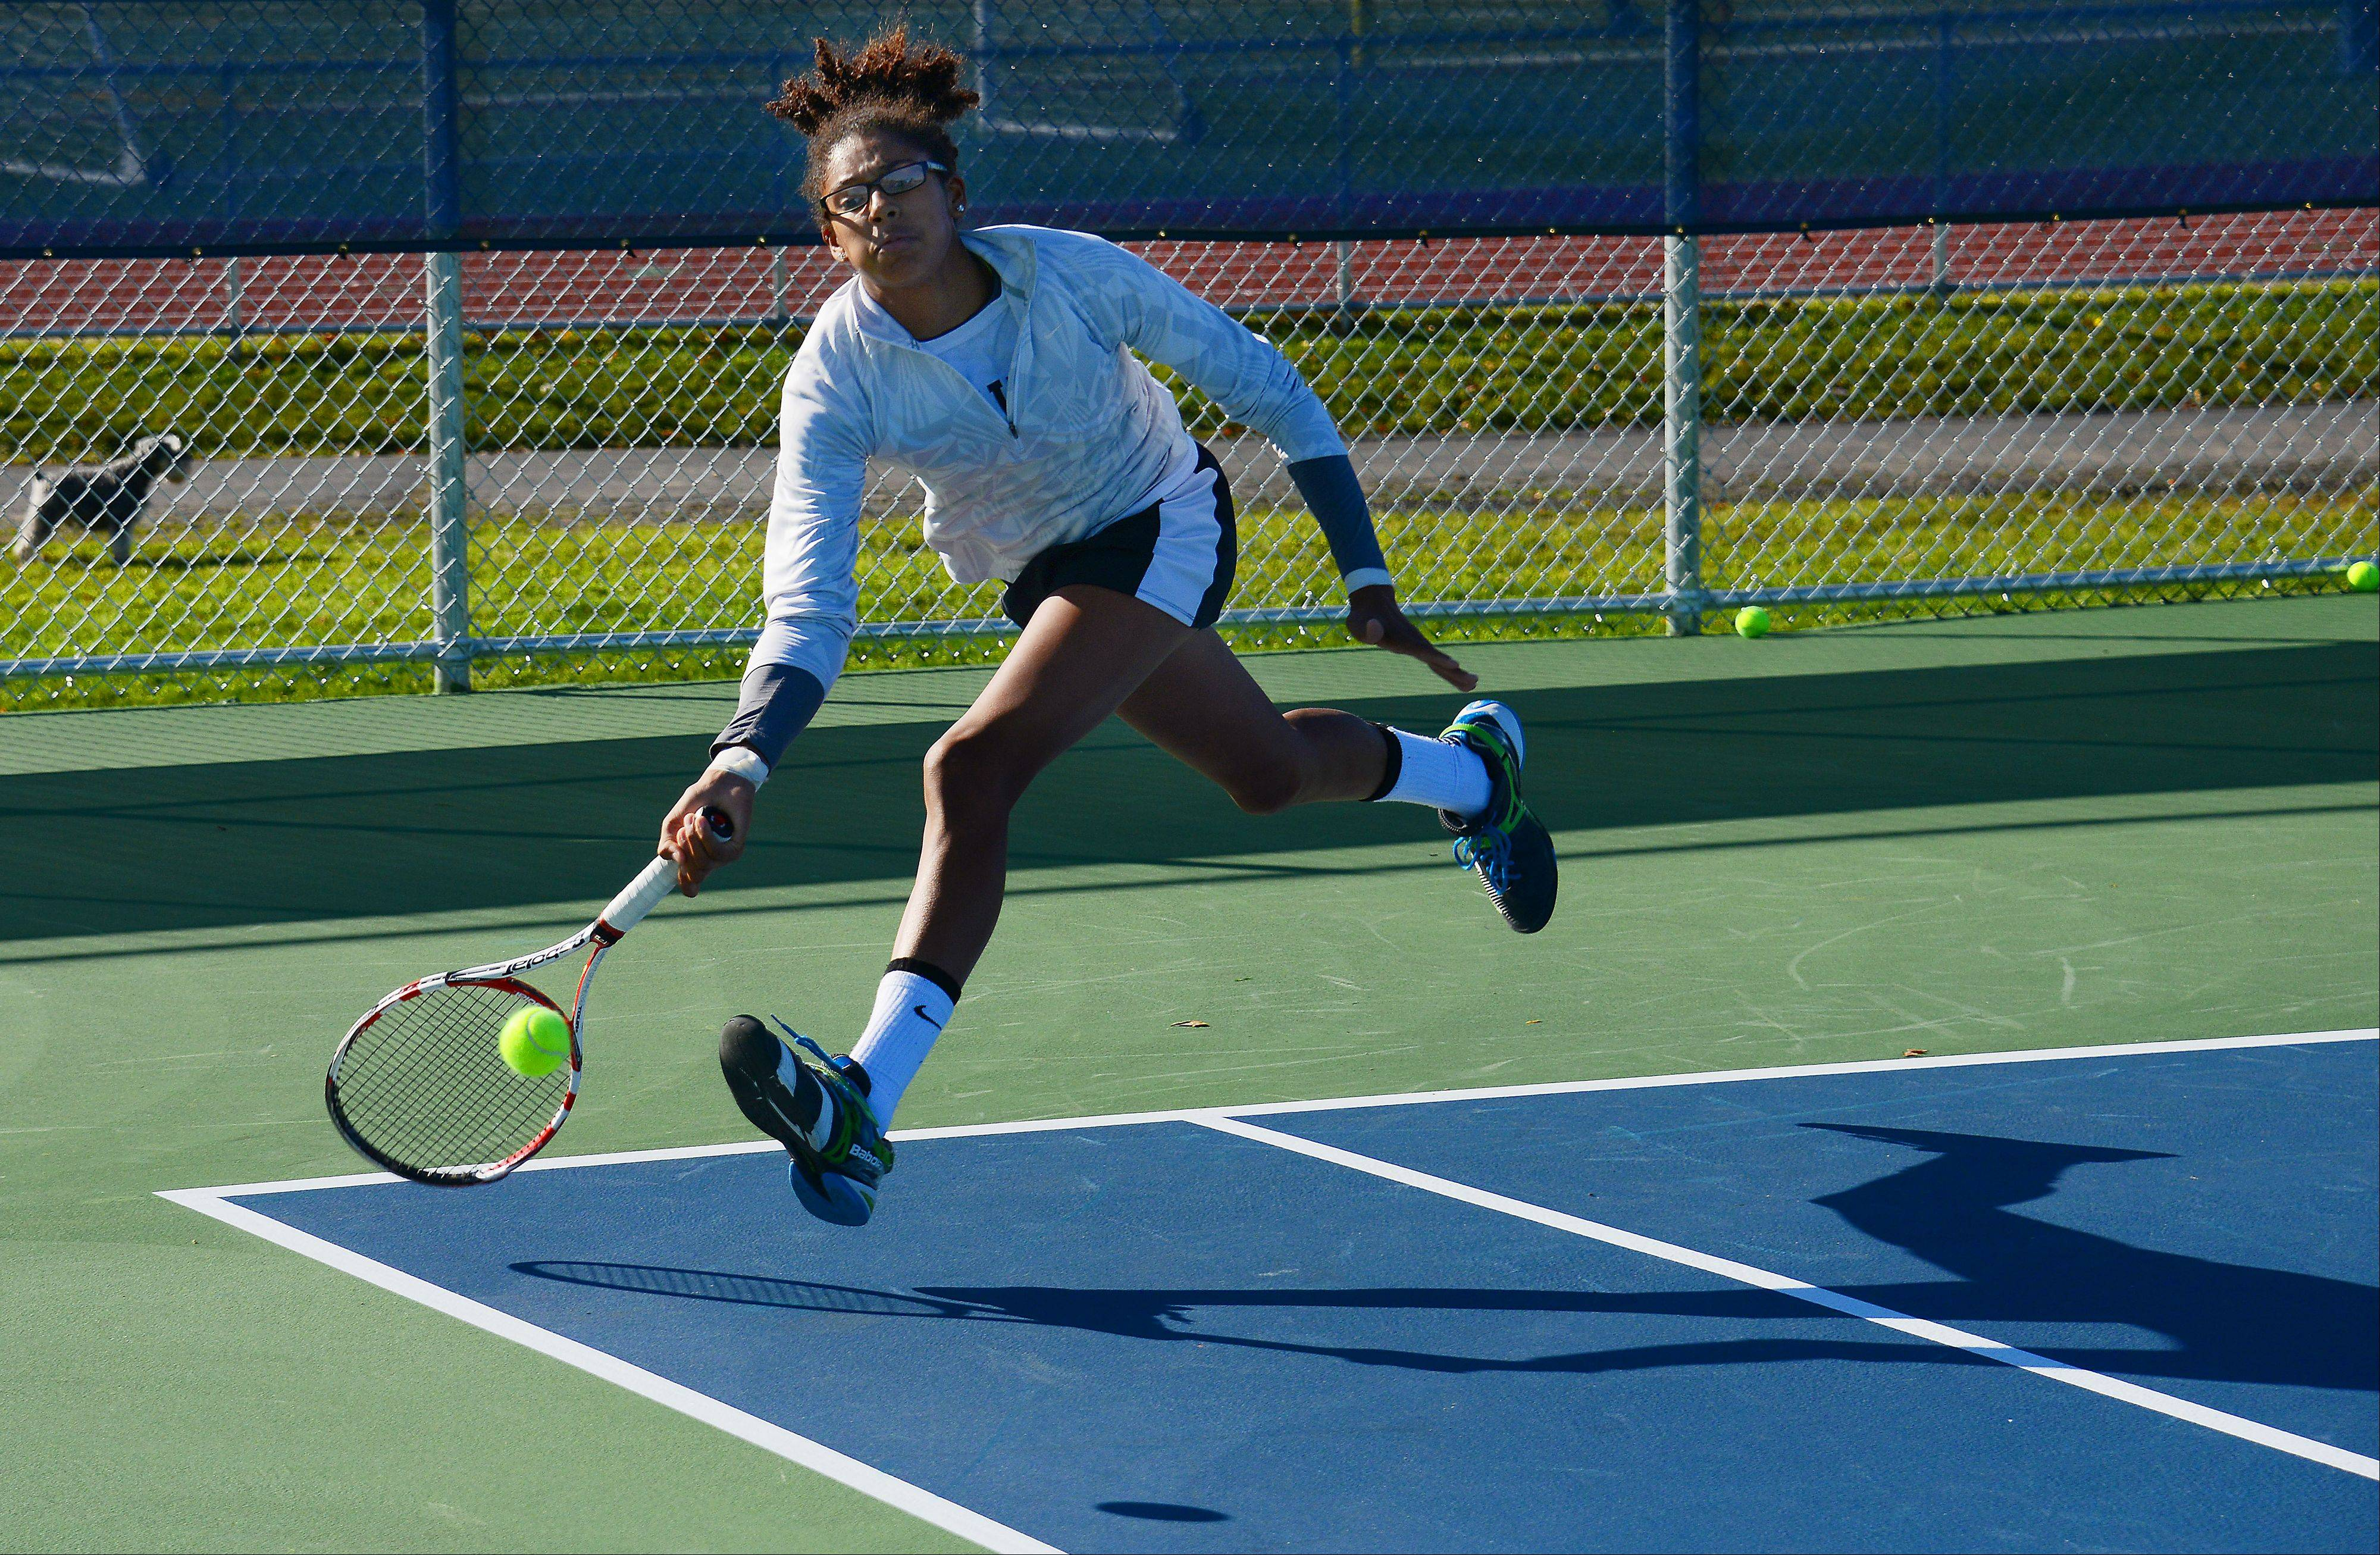 Wheaton Warrenville South's Keisha Clousing returns a serve in her singles state semifinals match against Brienne Minor of Carmel at Buffalo Grove on Saturday. Clousing went on to win the singles championship.